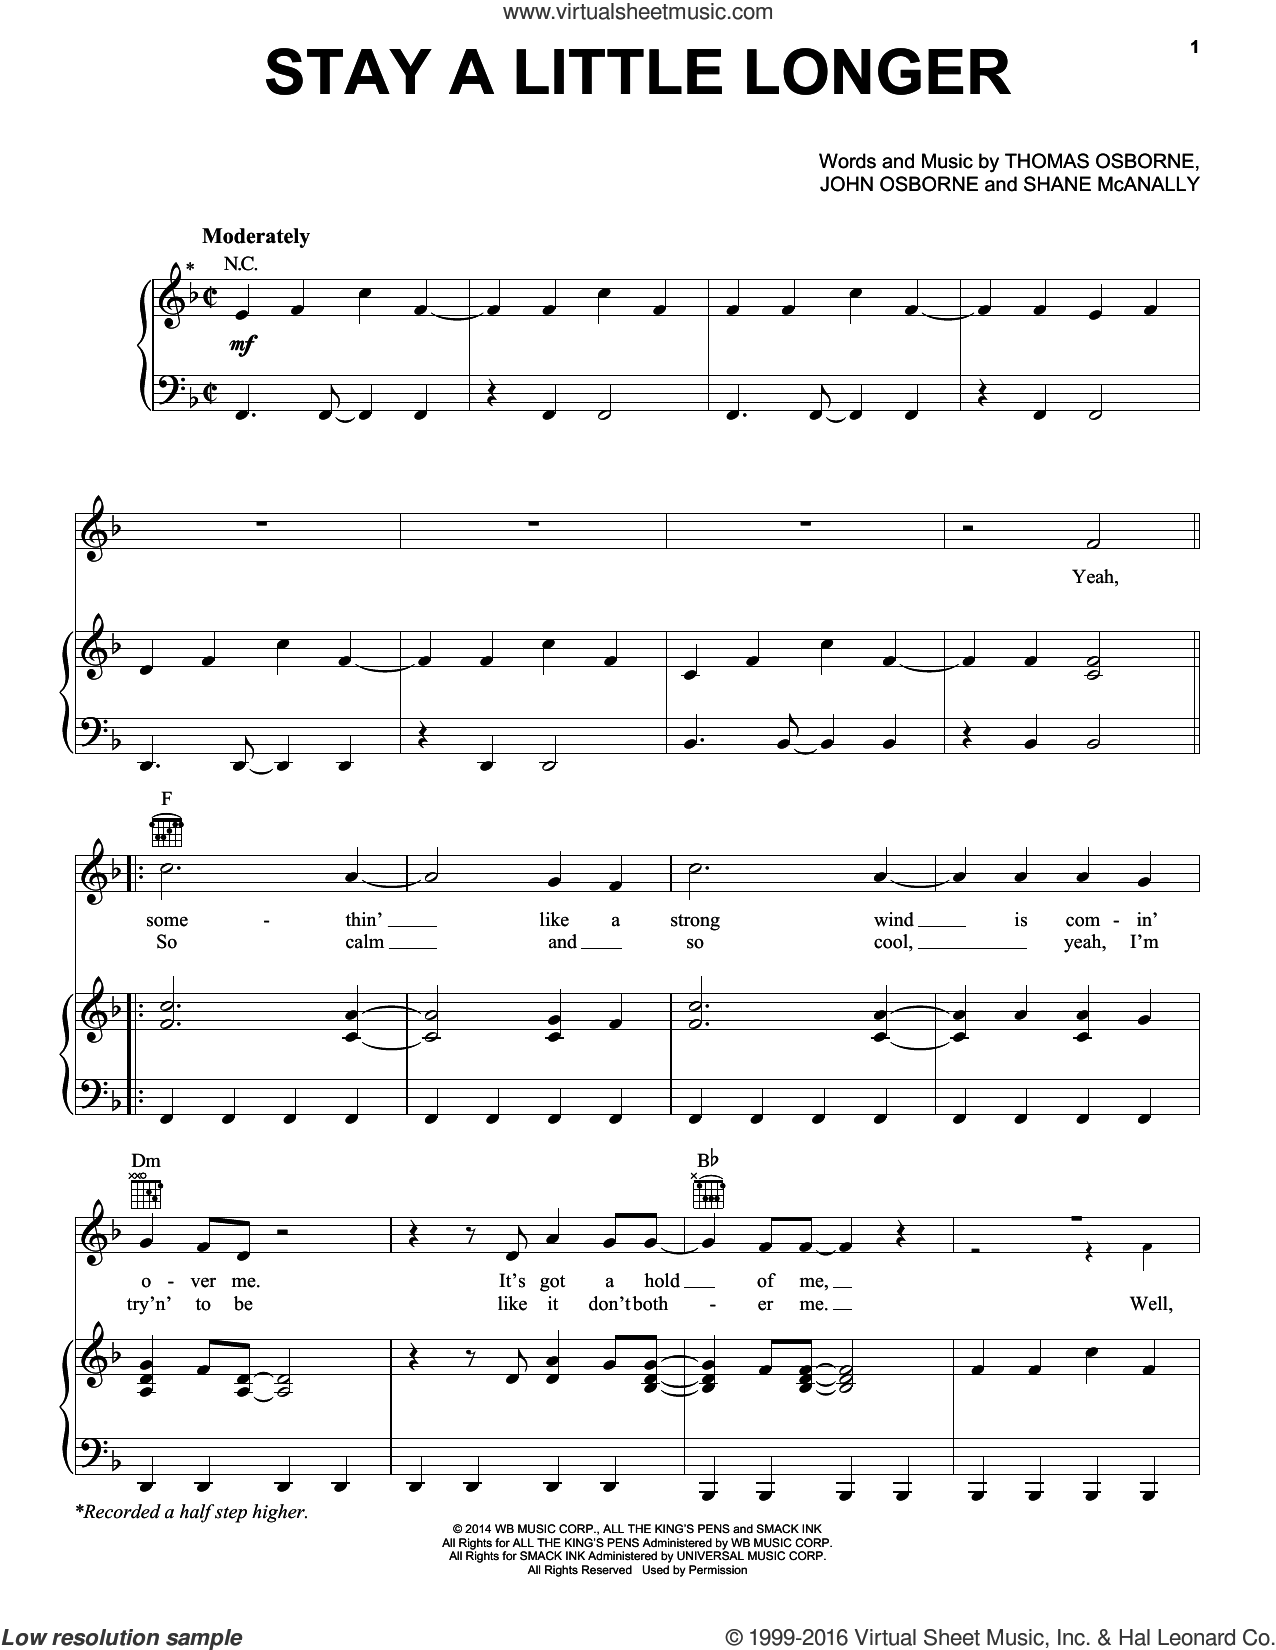 Stay A Little Longer sheet music for voice, piano or guitar by Brothers Osborne, John Osborne, Shane McAnally and Thomas Osborne, intermediate